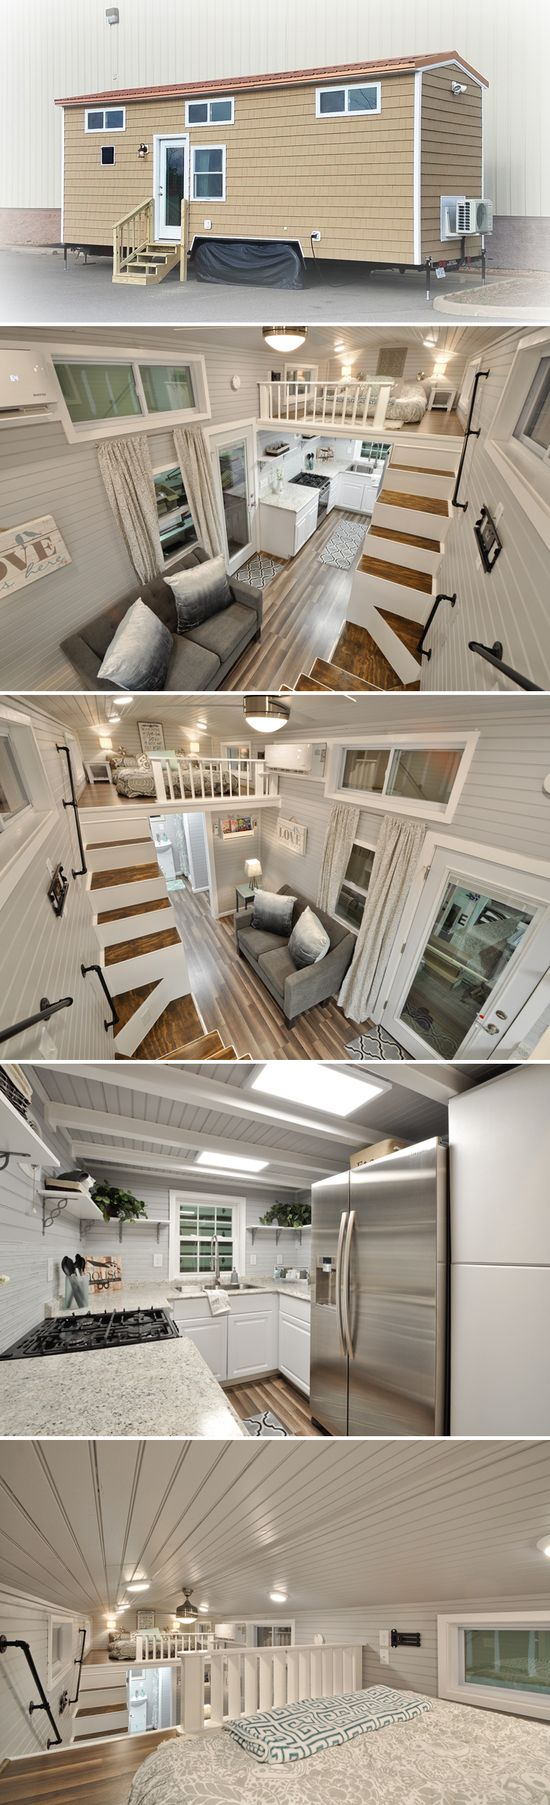 Tiny Home Ideas Tiny Home Ideas Brownie 6654 brownie campbell rd